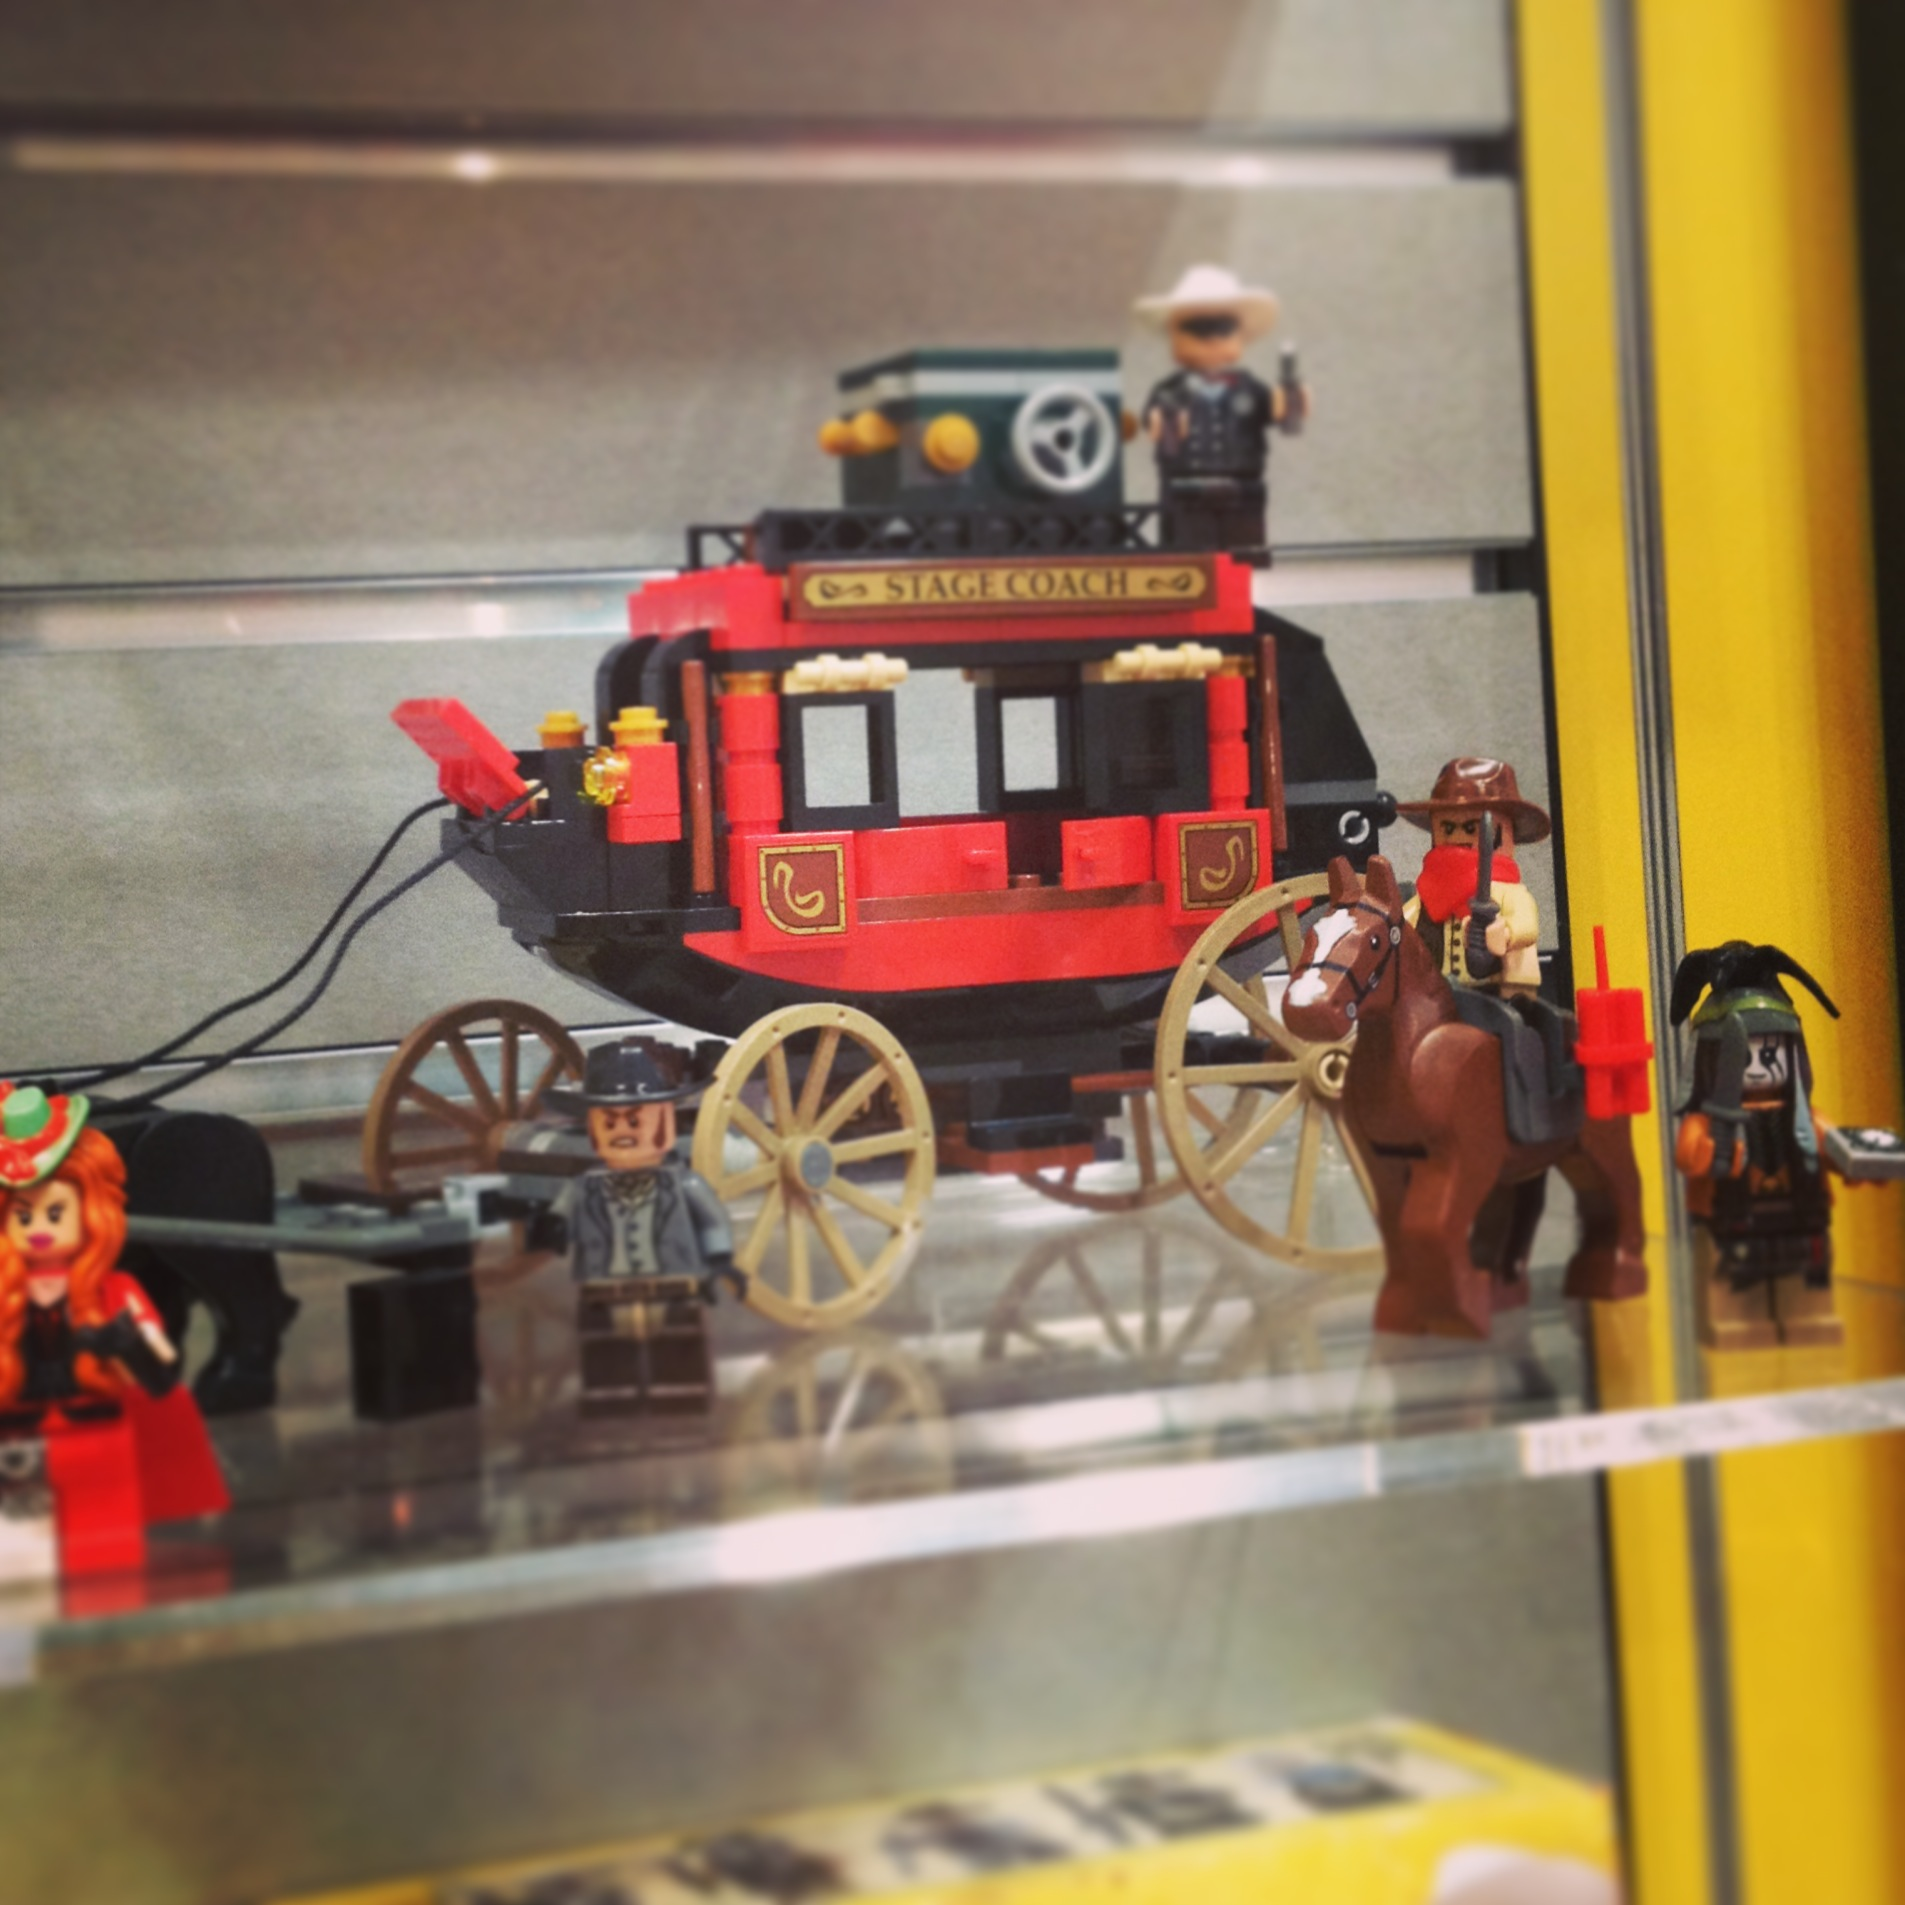 Lego's Lone Ranger collection will include this great stagecoach.